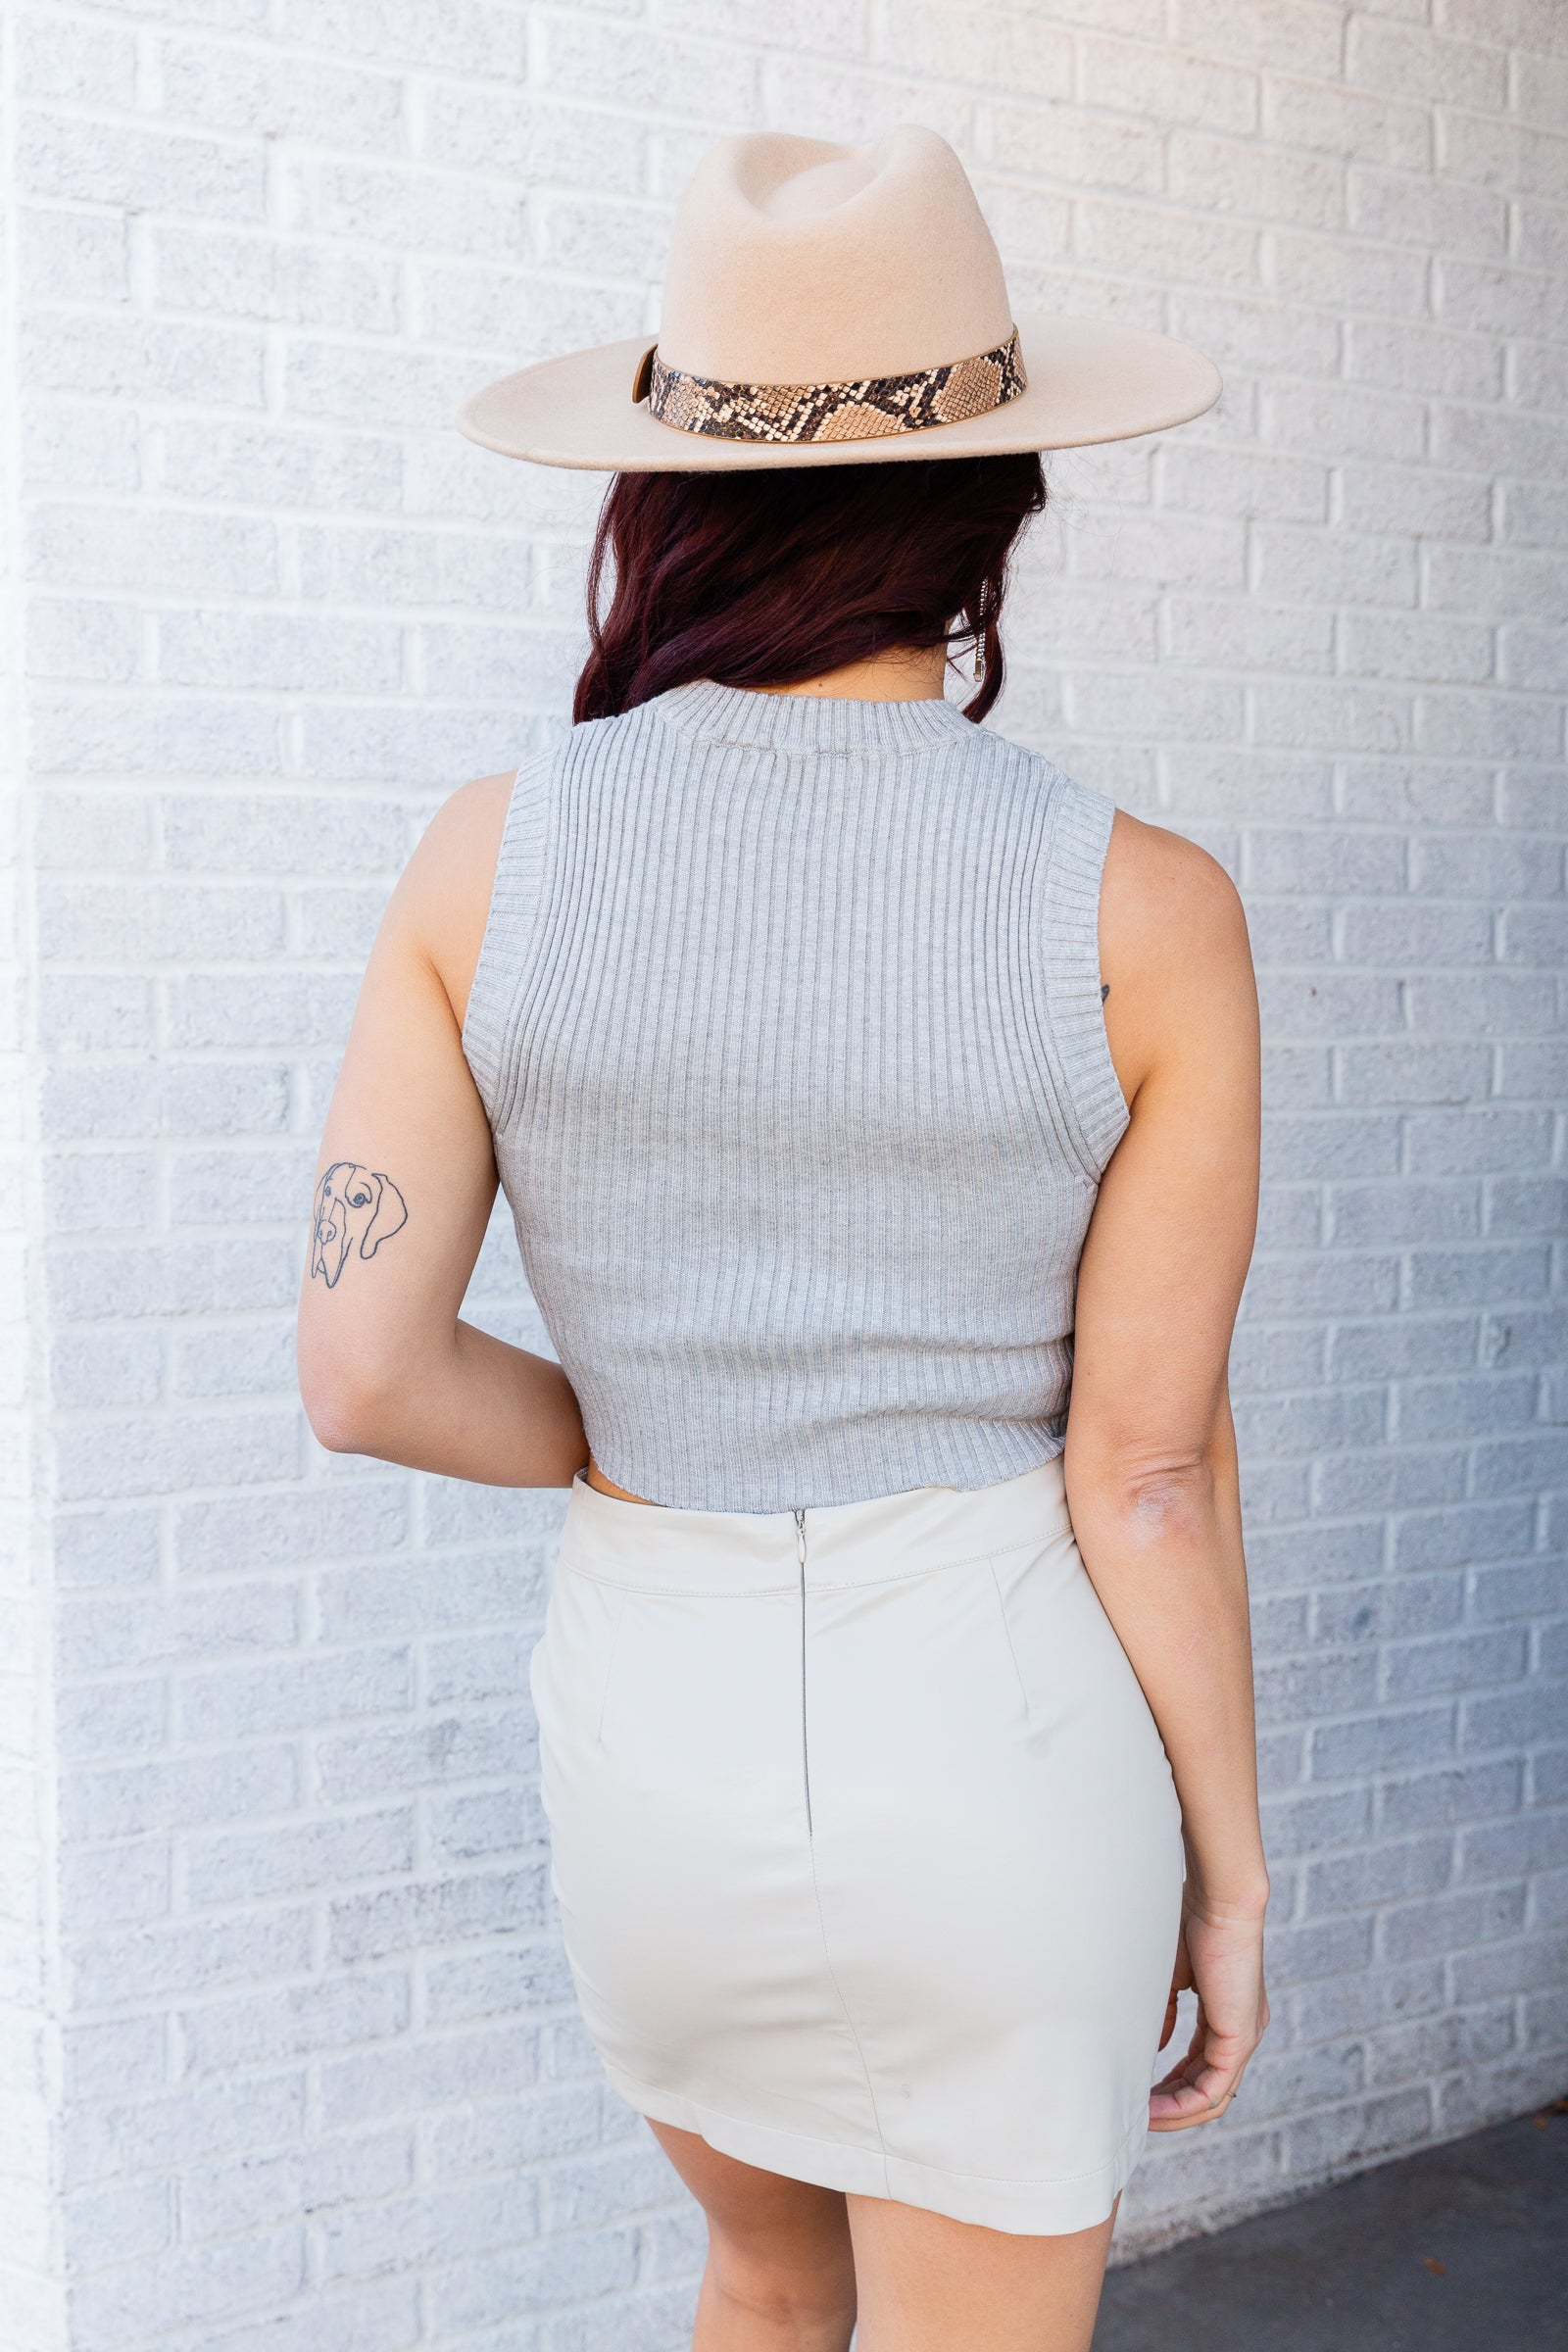 Sleeveless to a mock neckline on a fitted and ribbed knit bodice. Style this chic sweater vest over a collared button-down, with a mini skirt, booties, and a mini handbag.